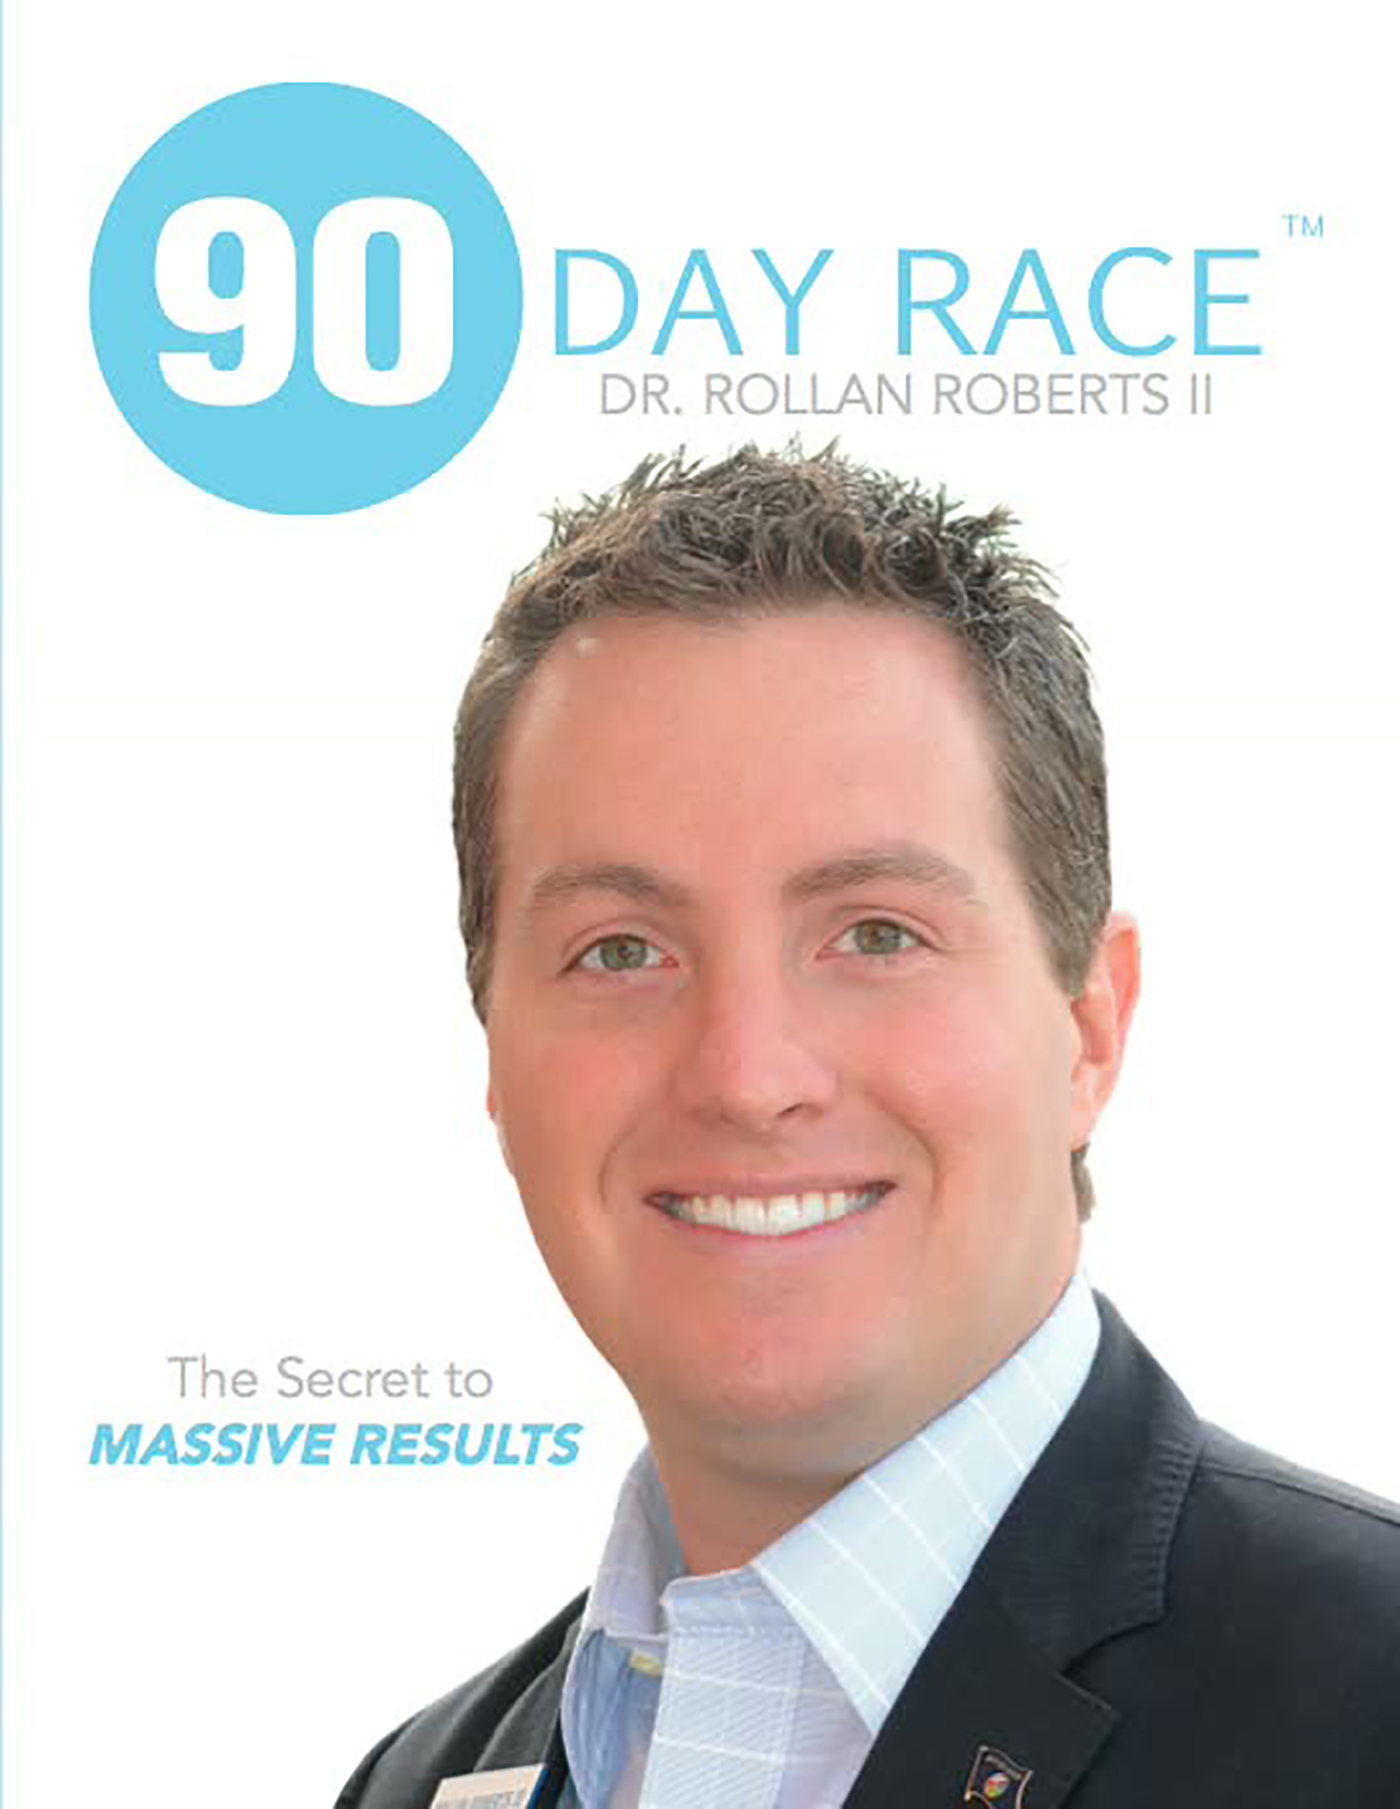 90 Day Race The Secret to MASSIVE RESULTS